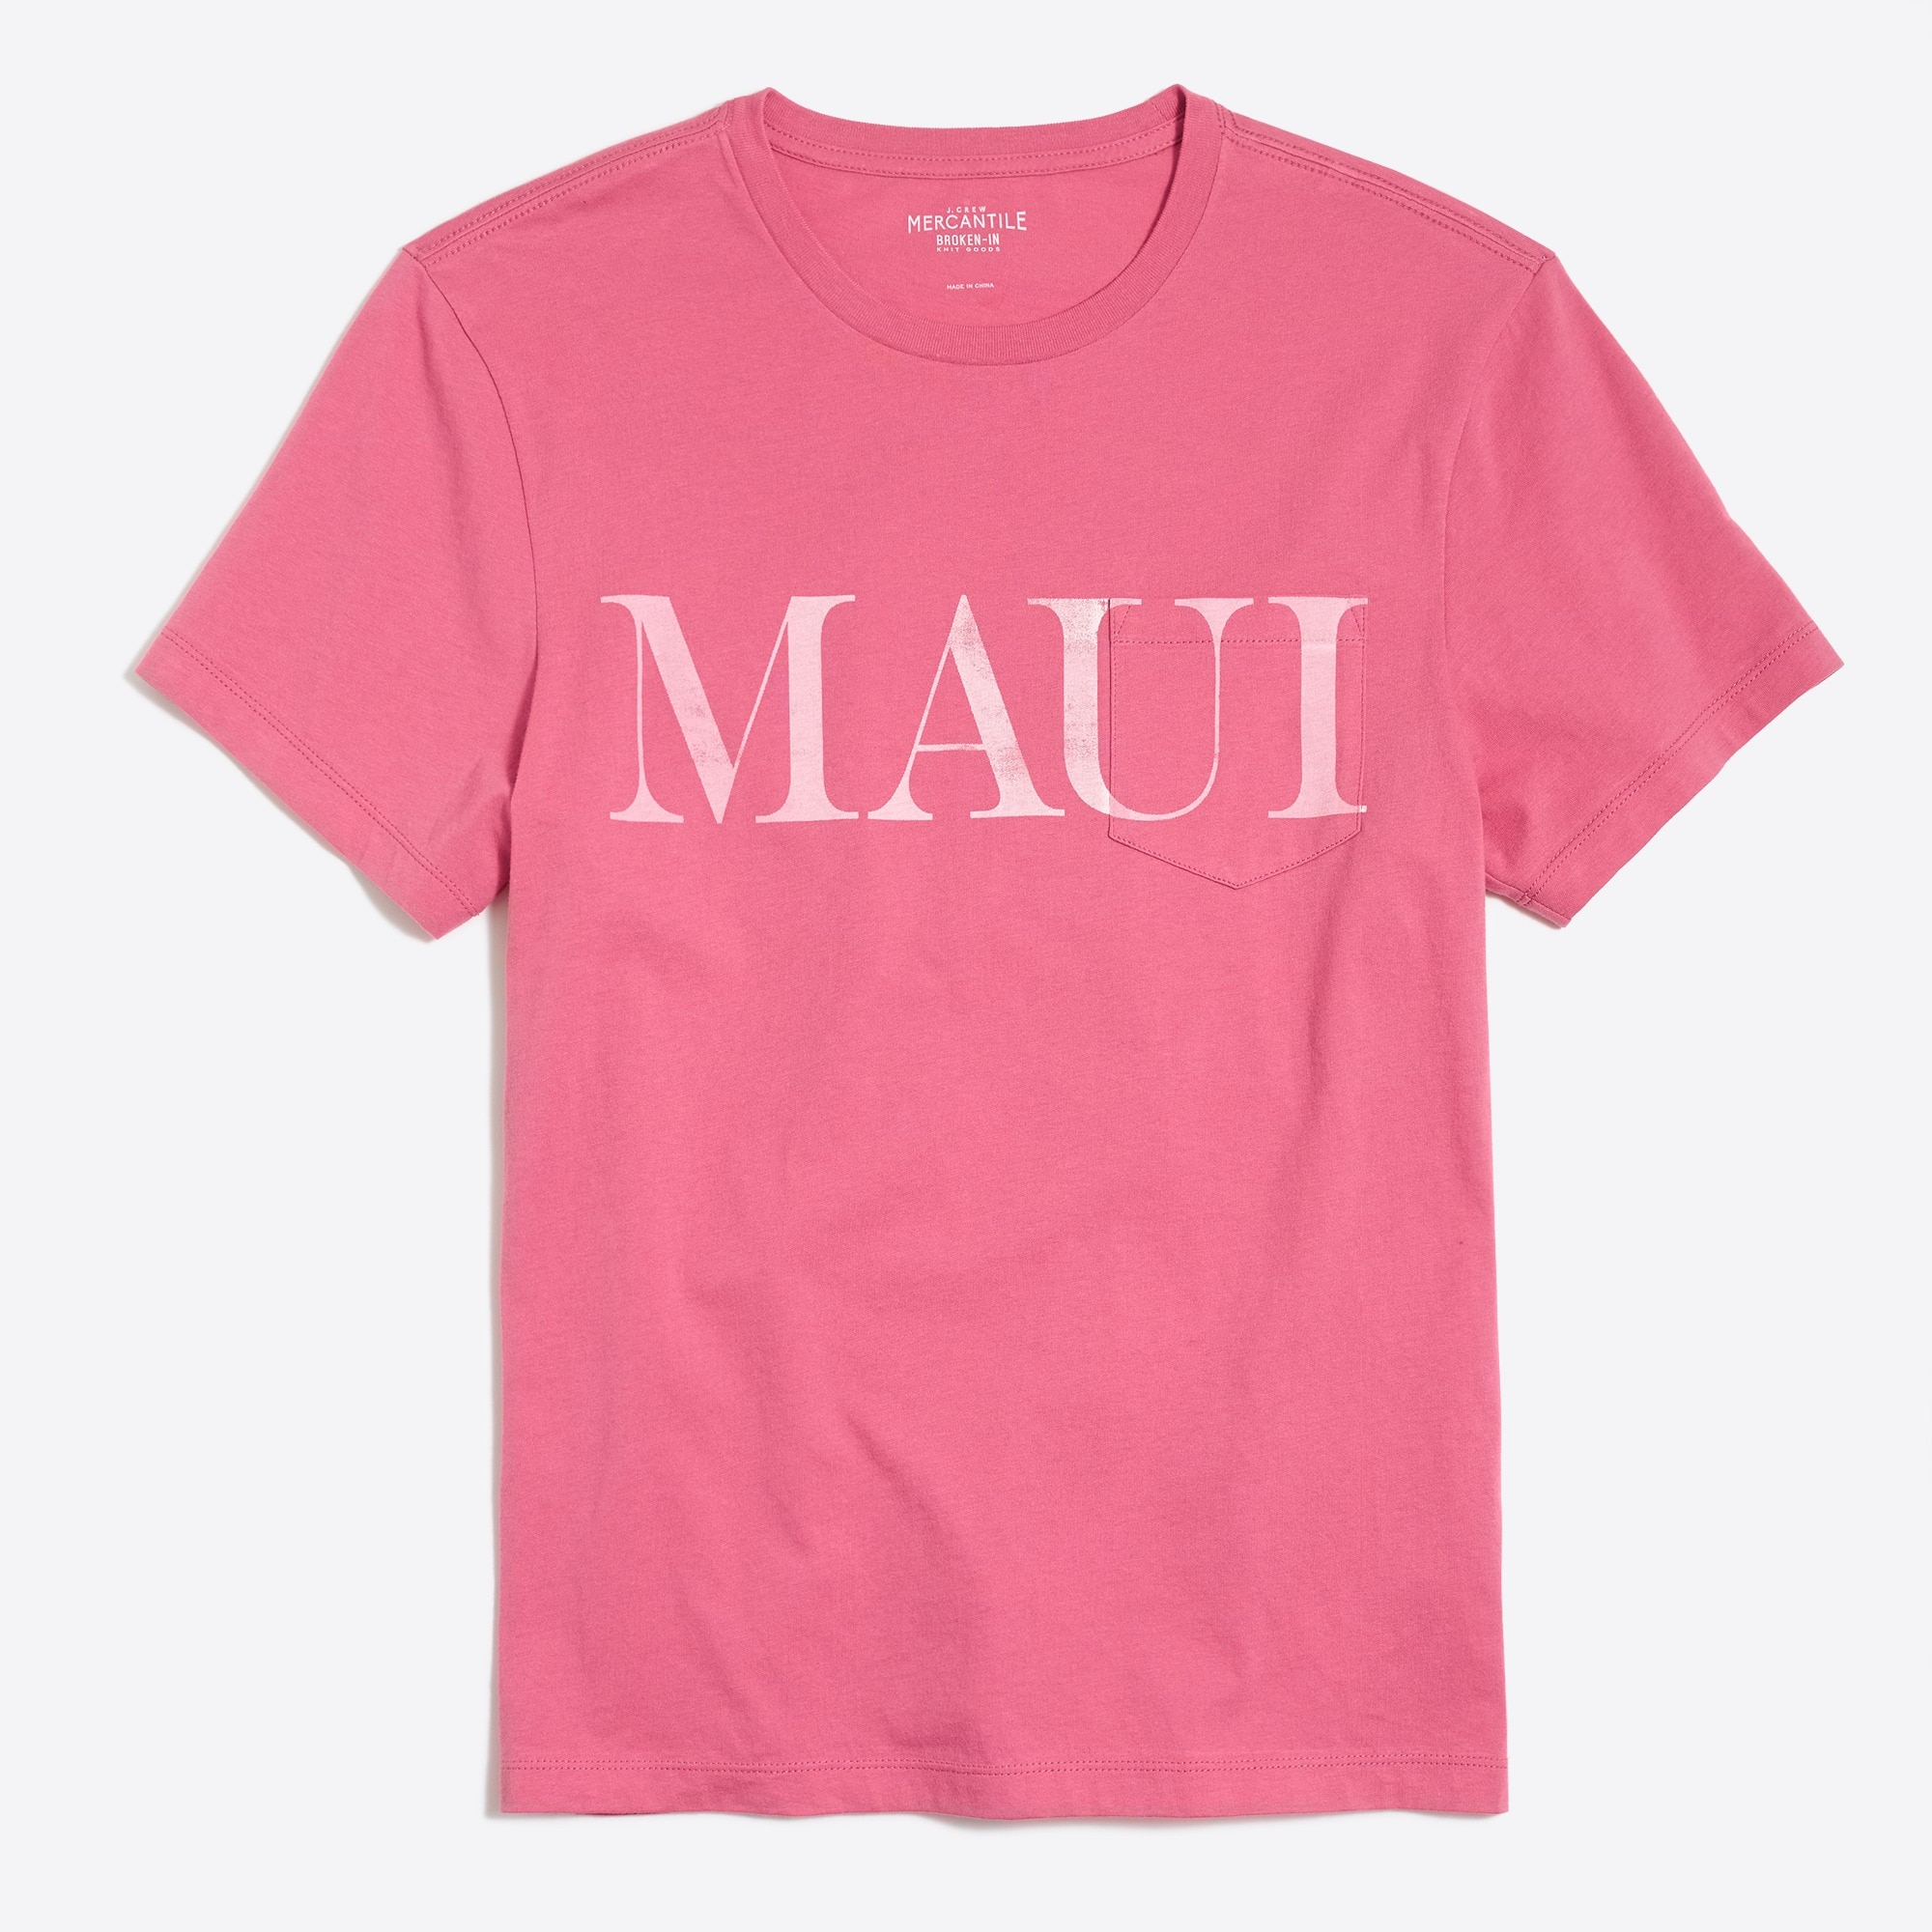 Image 4 for J.Crew Mercantile Broken-in Maui T-shirt